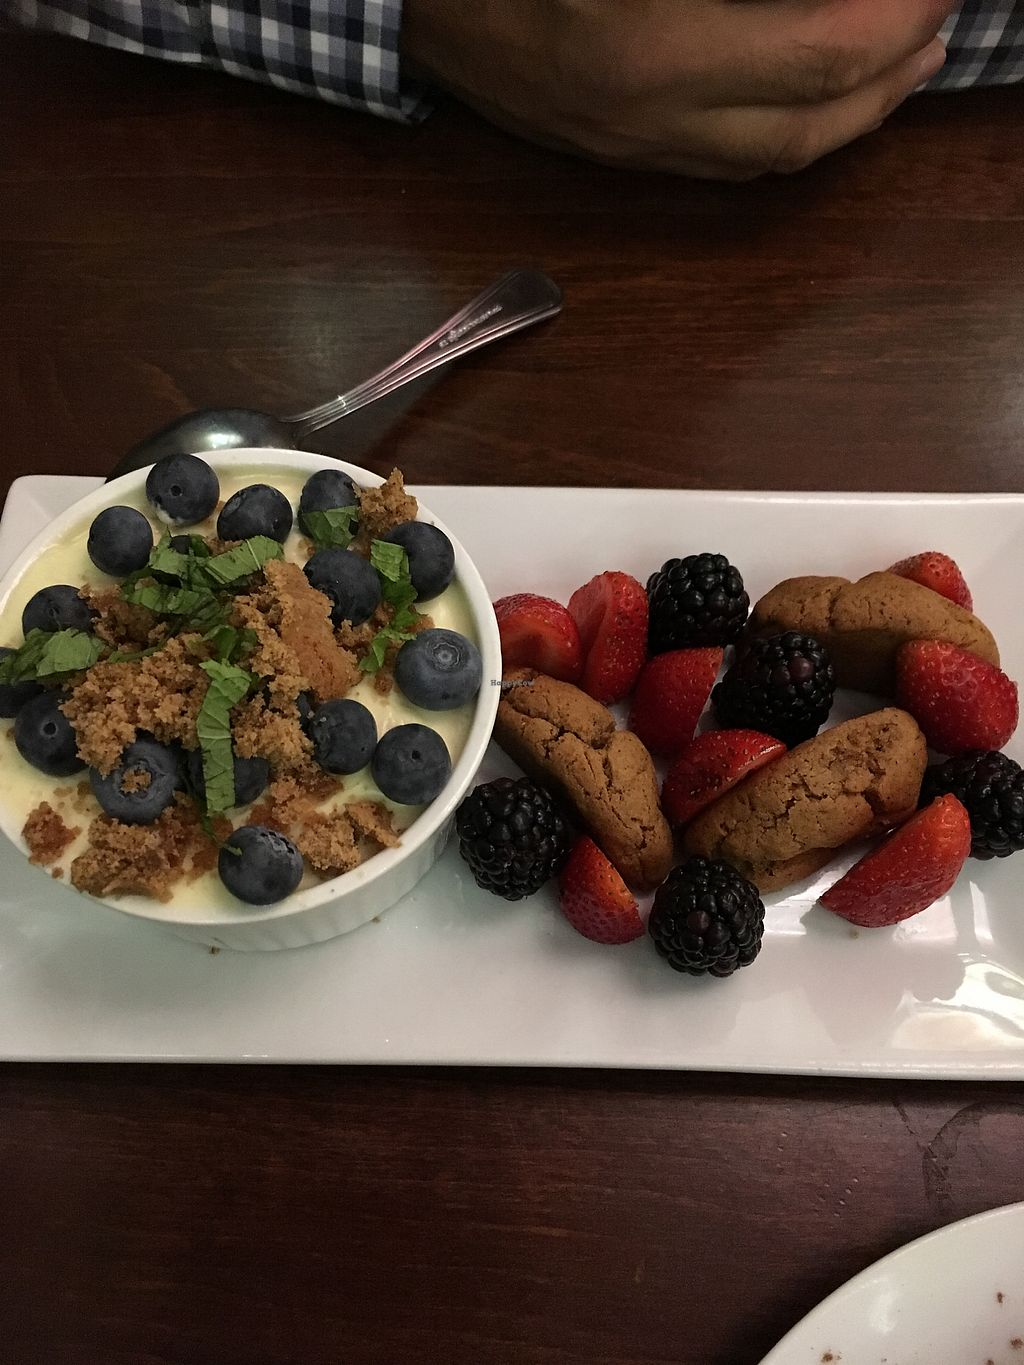 """Photo of Plant Food Supper Club  by <a href=""""/members/profile/RedheadedR"""">RedheadedR</a> <br/>Lemon custard with cookies and berries  <br/> September 17, 2017  - <a href='/contact/abuse/image/82687/305293'>Report</a>"""